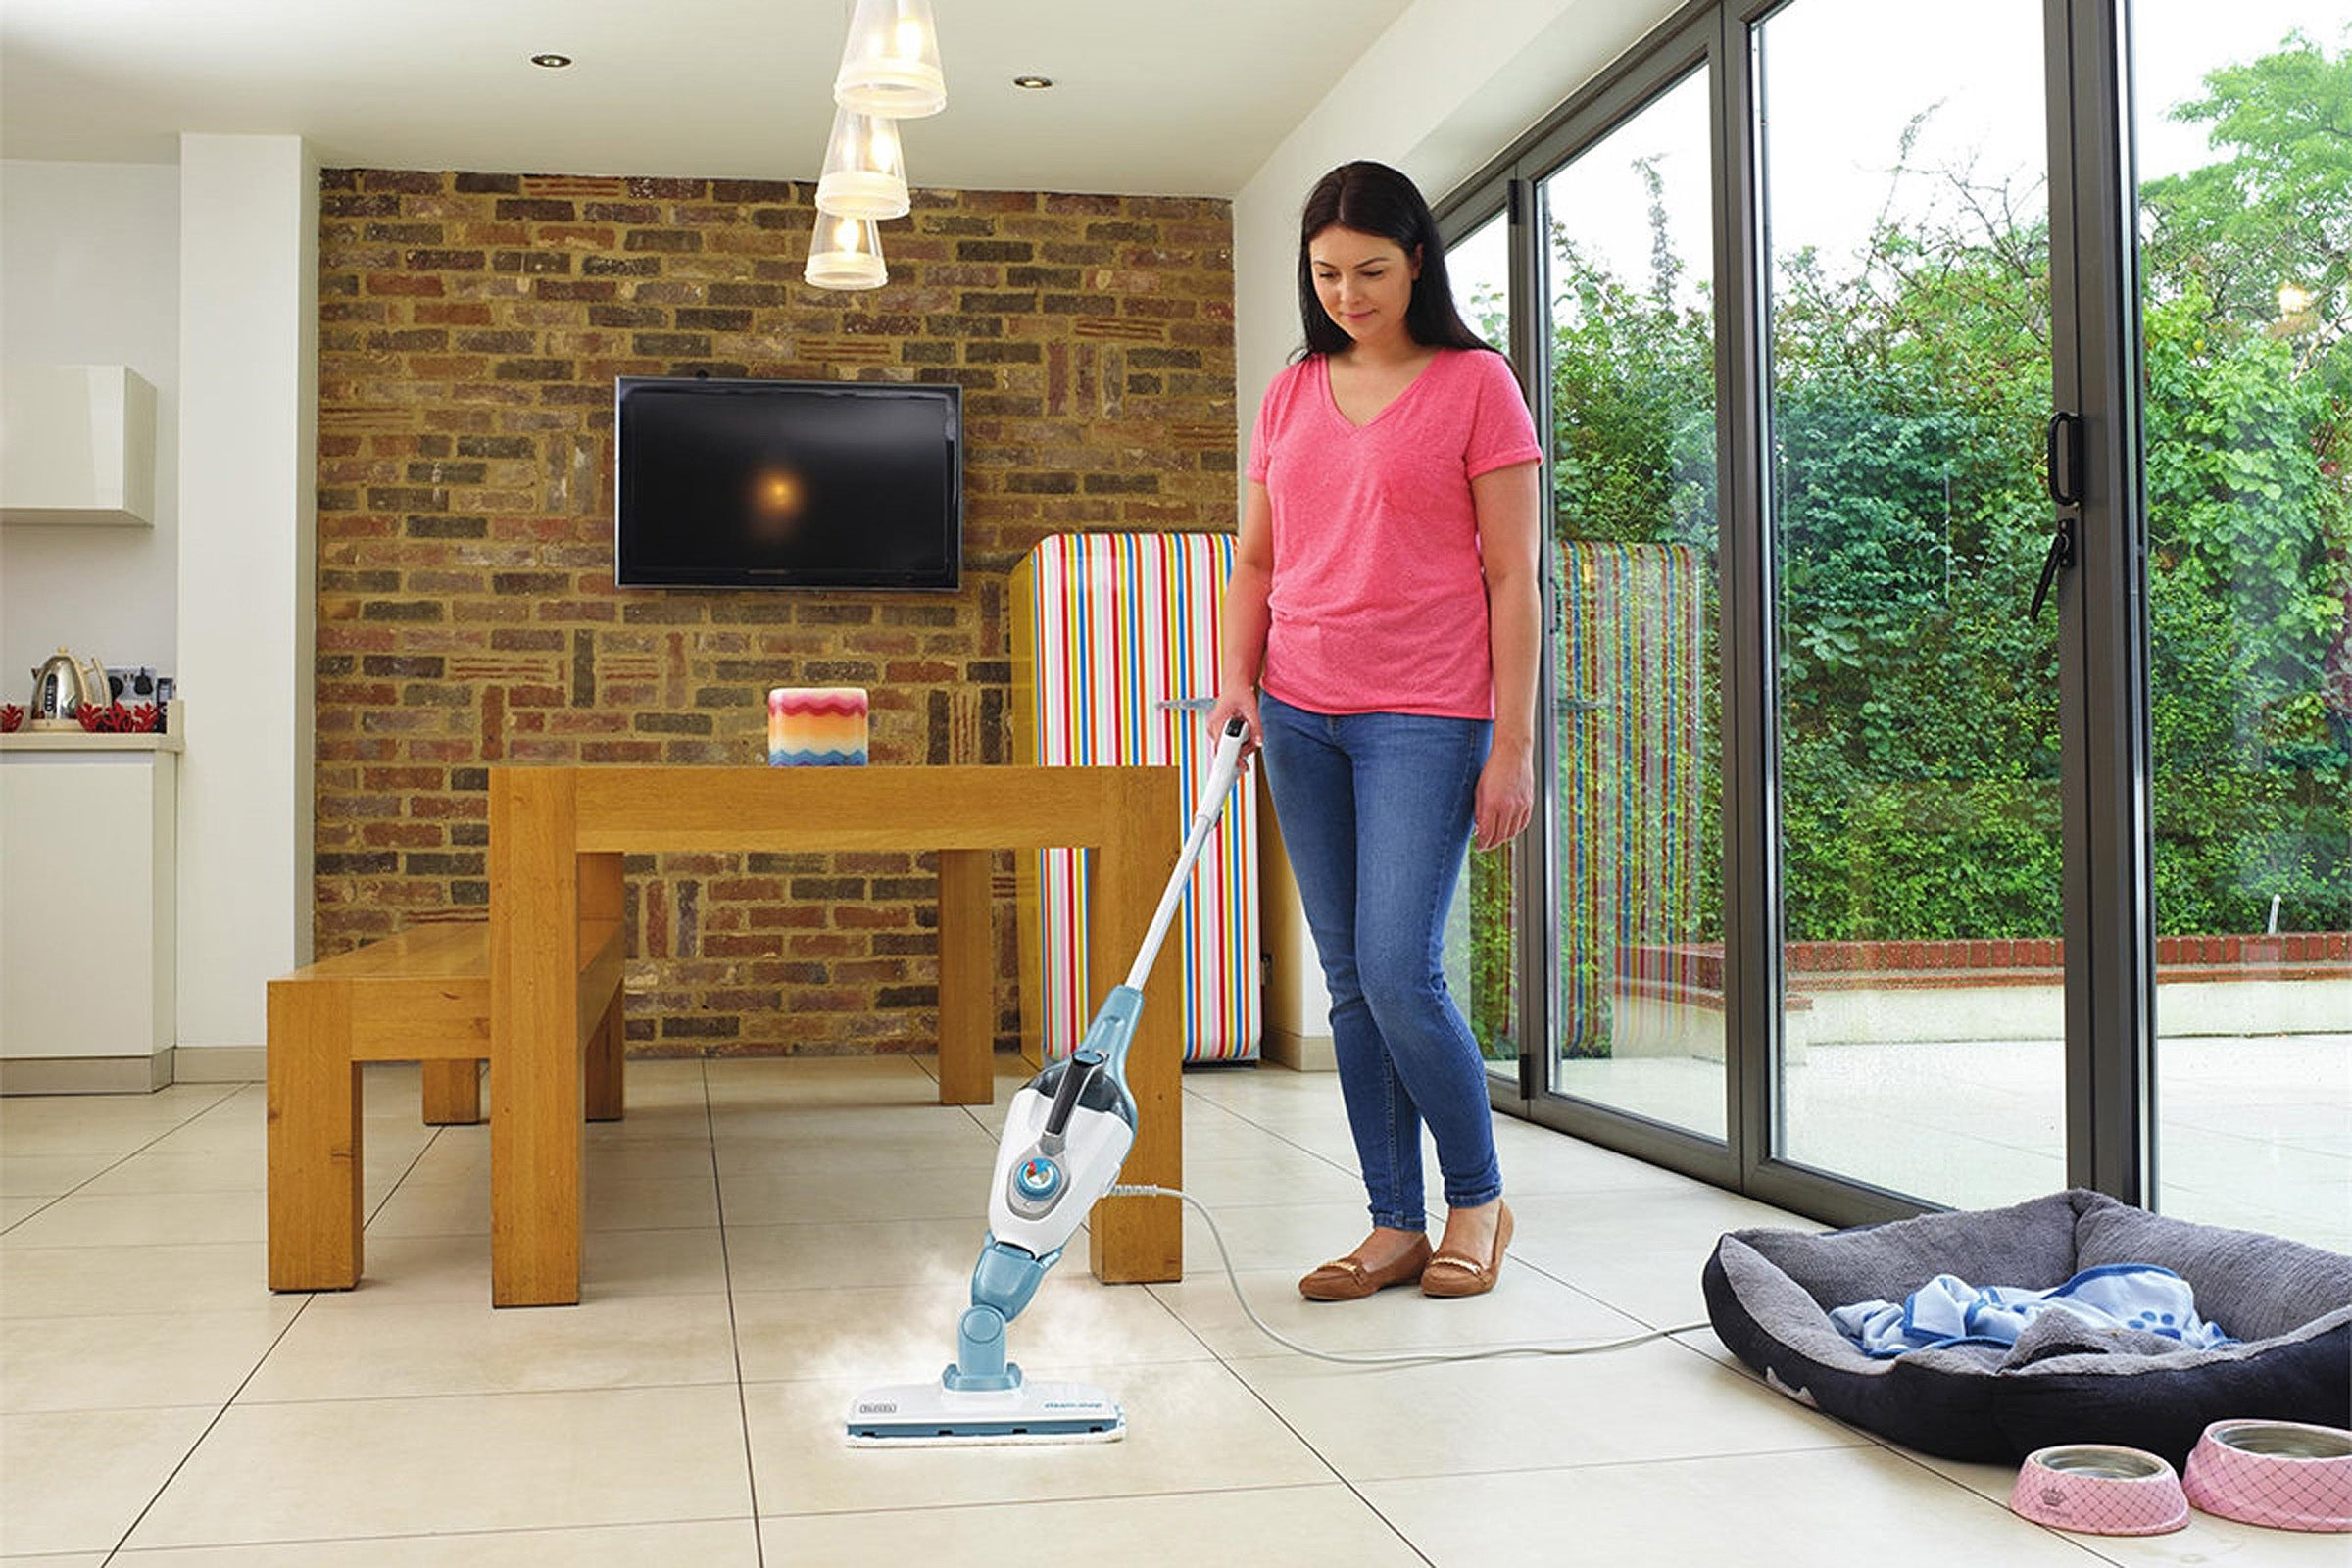 Best Steam Cleaners The Best For Carpet Tiles Floors And - Are steam cleaners good for tile floors